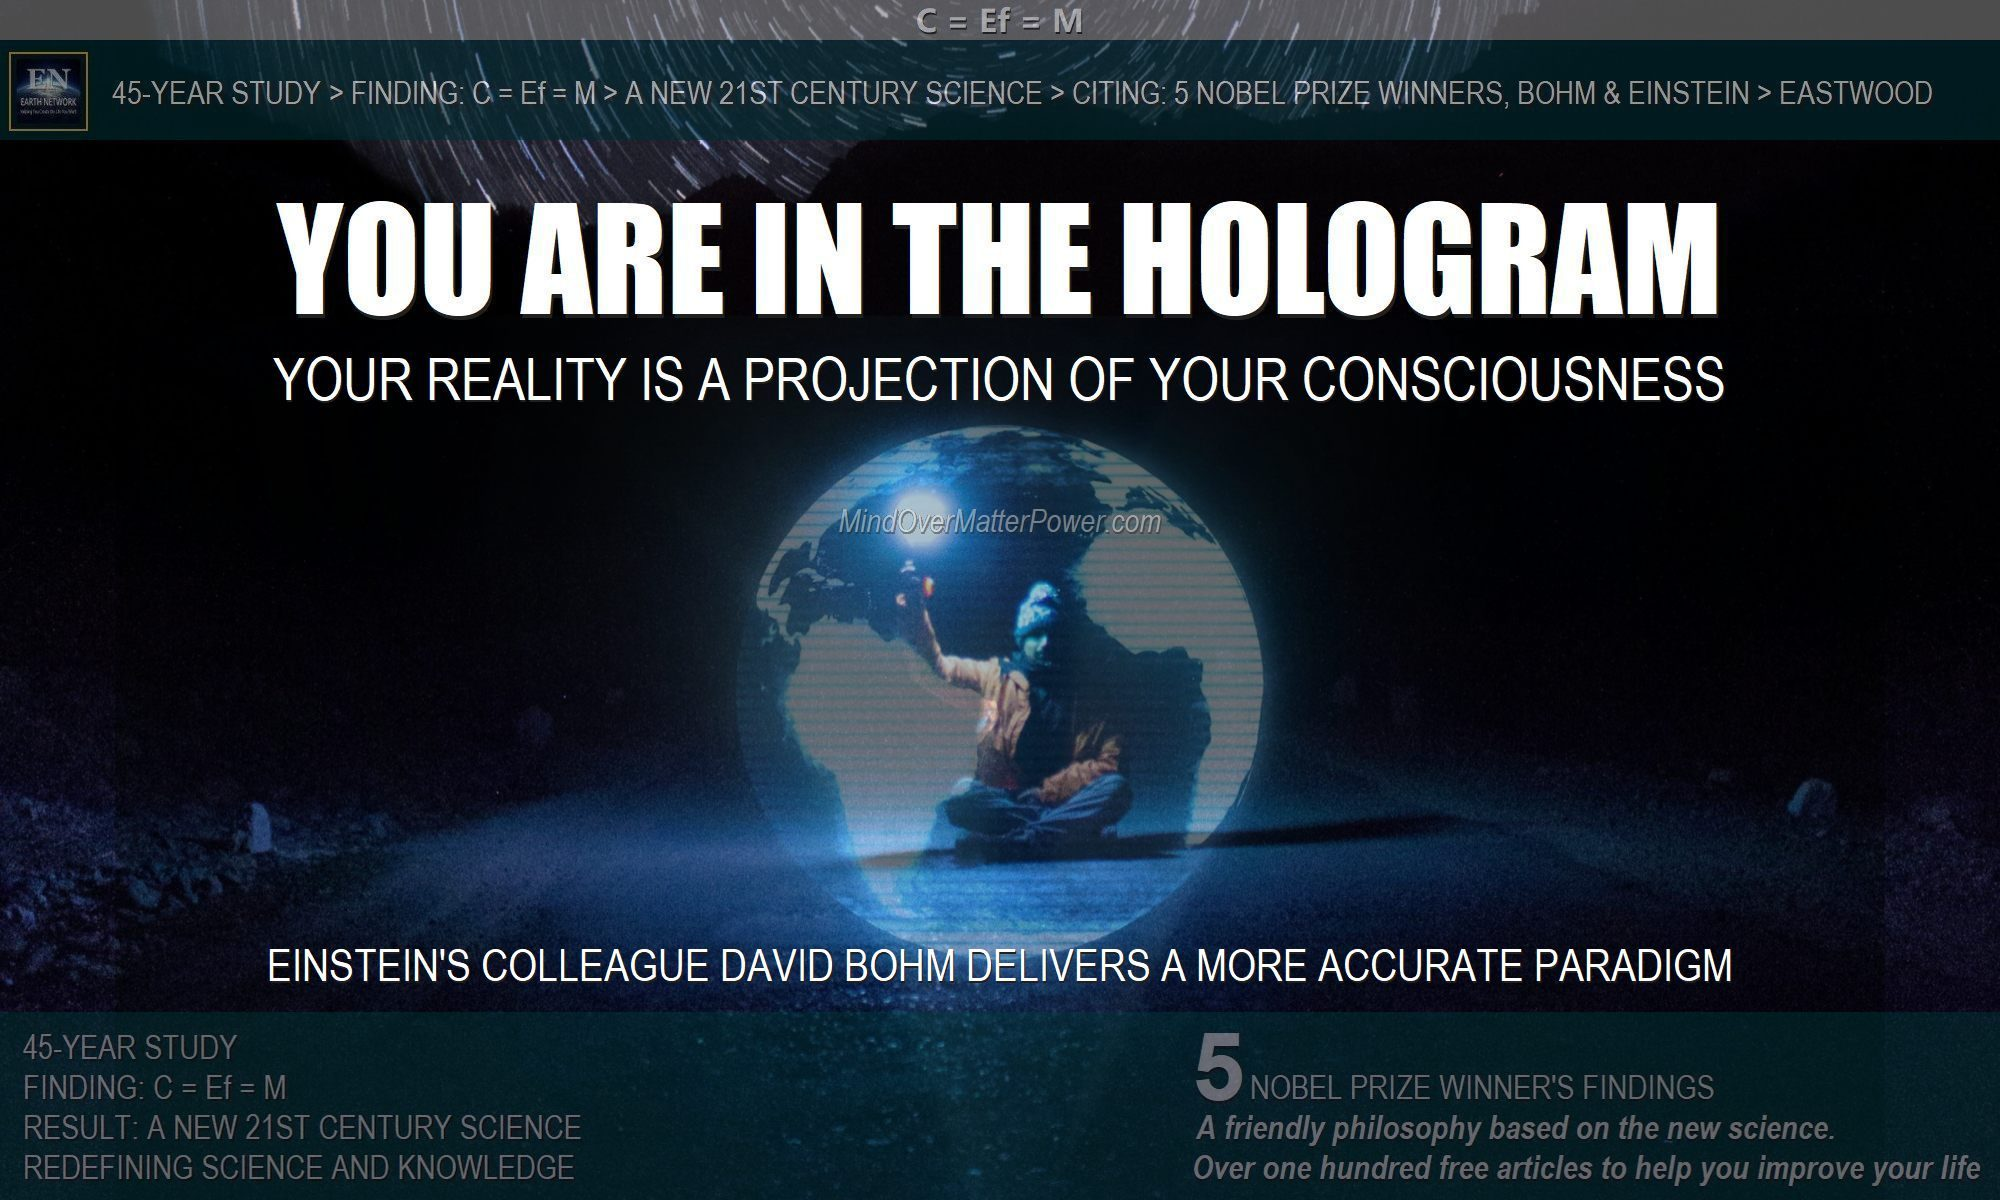 Man in hologram of earth depicts the fact that your brain and 5 sense project your physical reality. You are in a holographic projection of your consciousness.